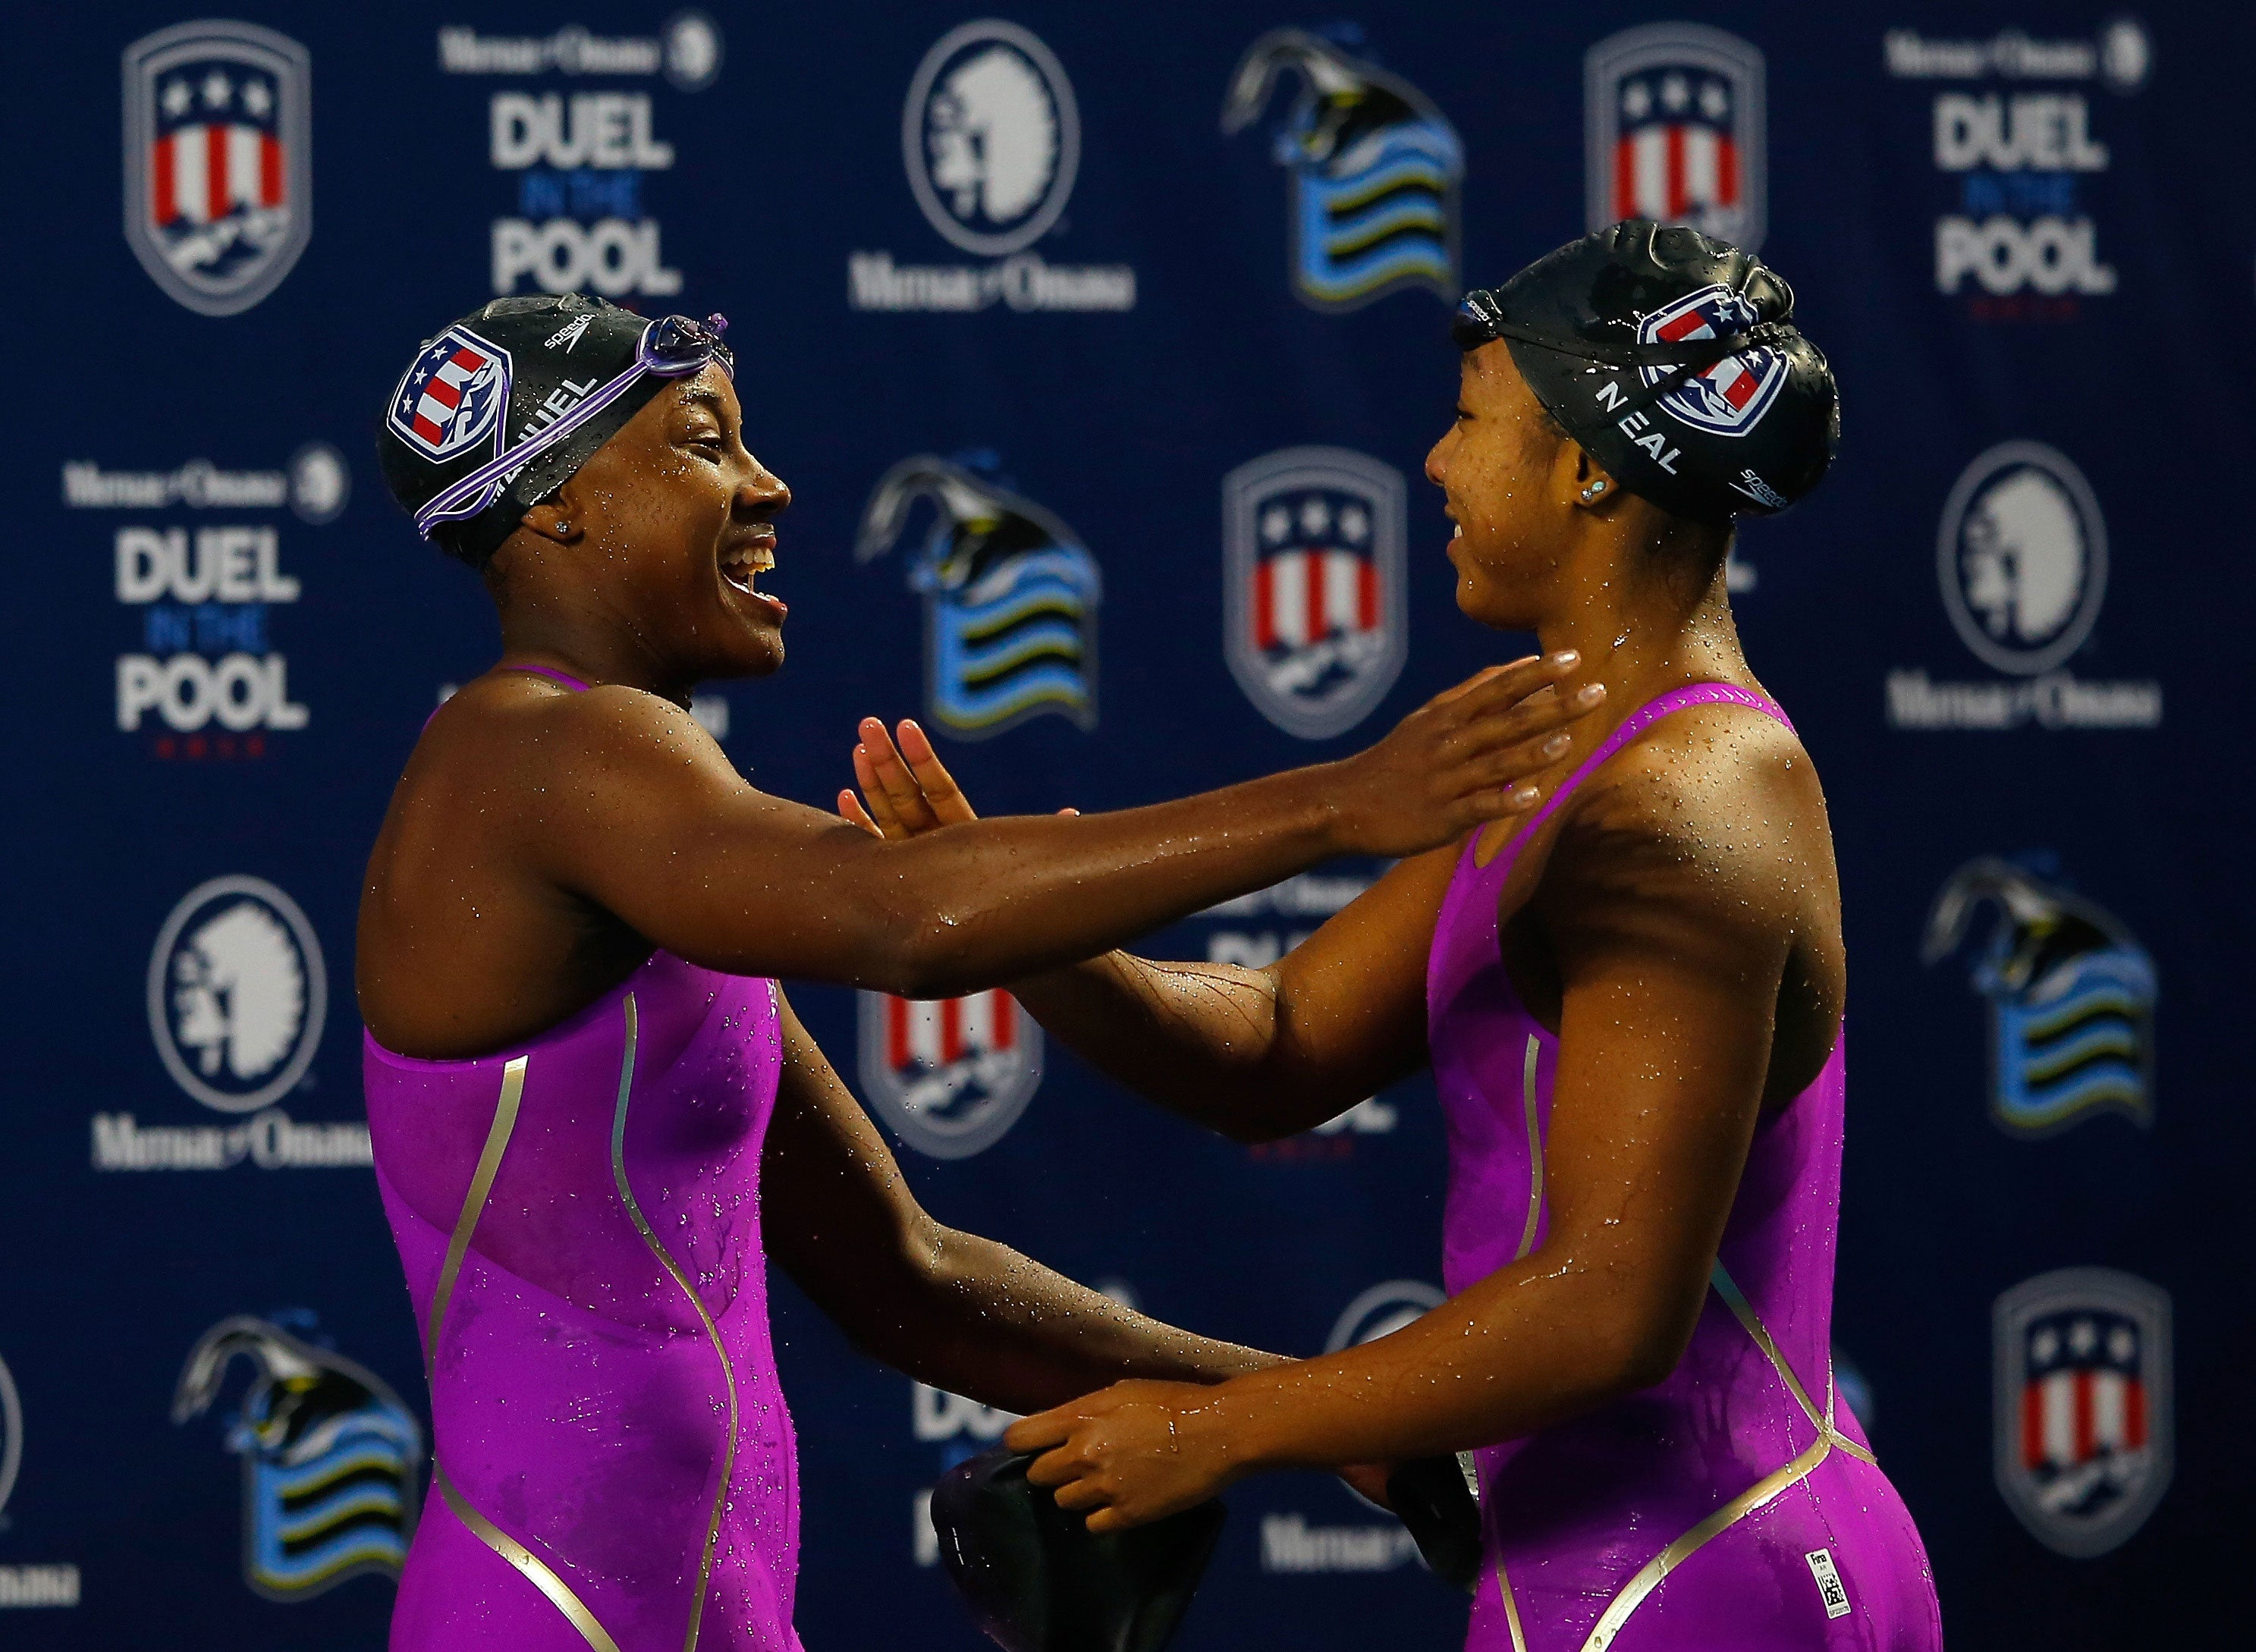 Lia Neal and Simone Manuel Become First Black Duo to Swim Simultaneously on US Olympic Team